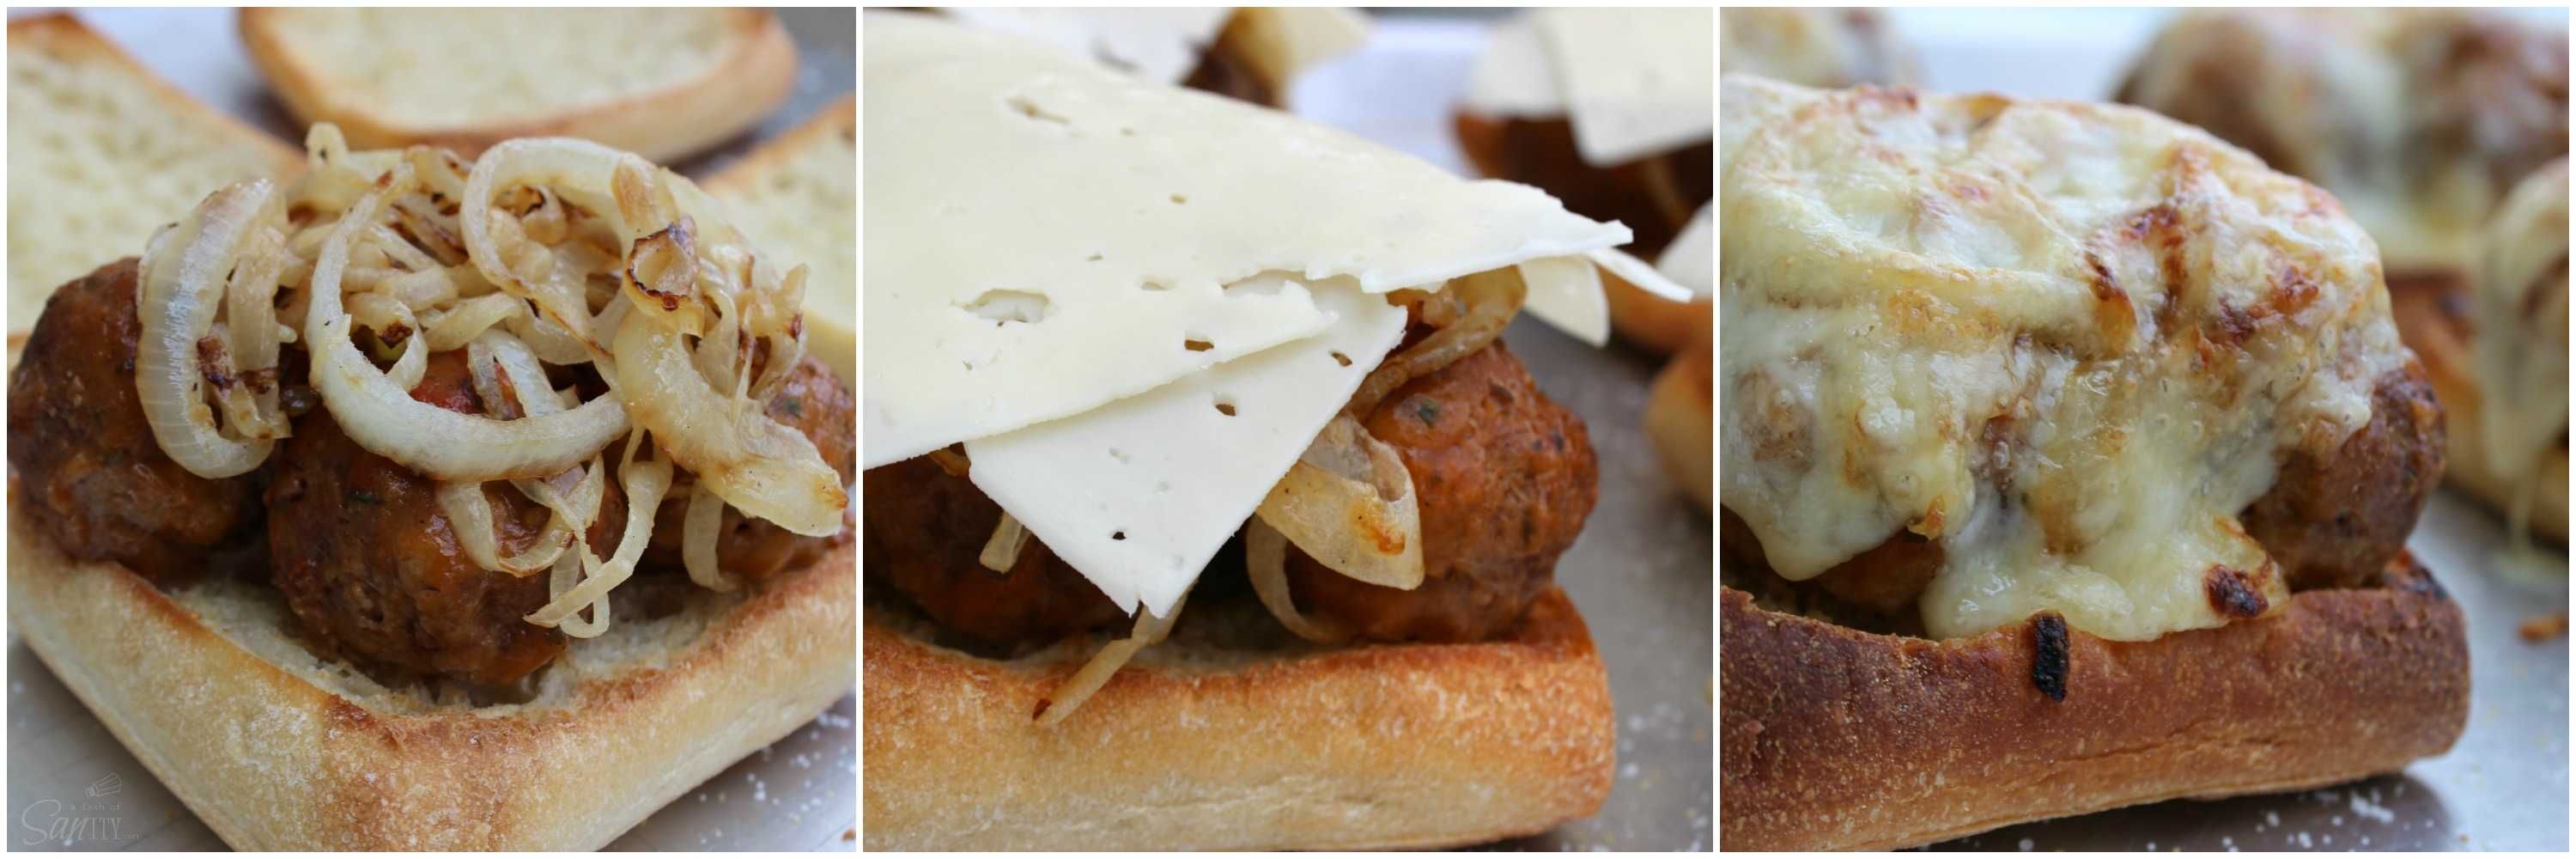 These French Onion Meatball Sandwiches are a cheesy onion-filled sandwich with meatballs. A delicious twist on French Onion Soup, a favorite classic.